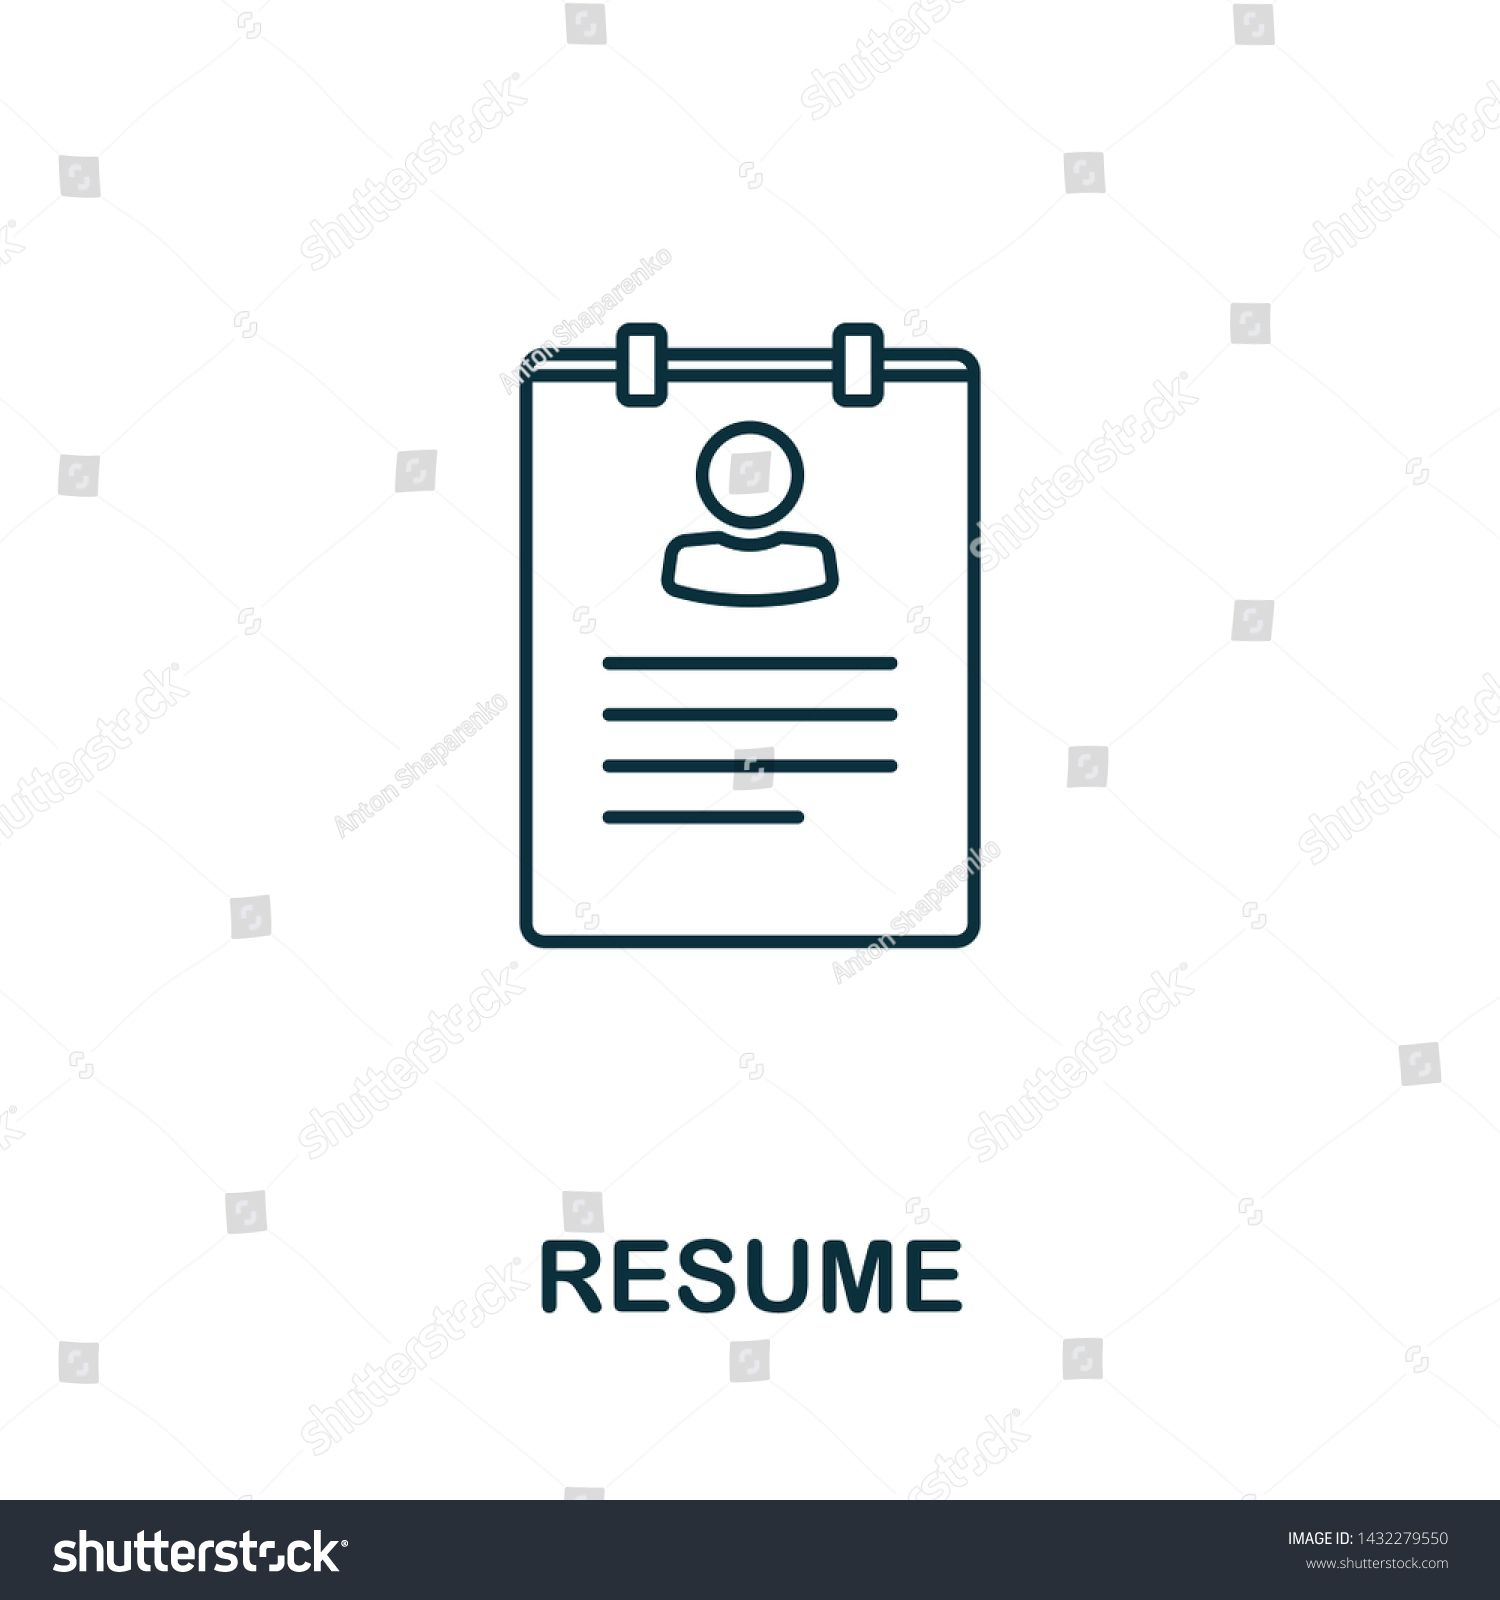 Resume Vector Icon Symbol In Outline Style Creative Sign From